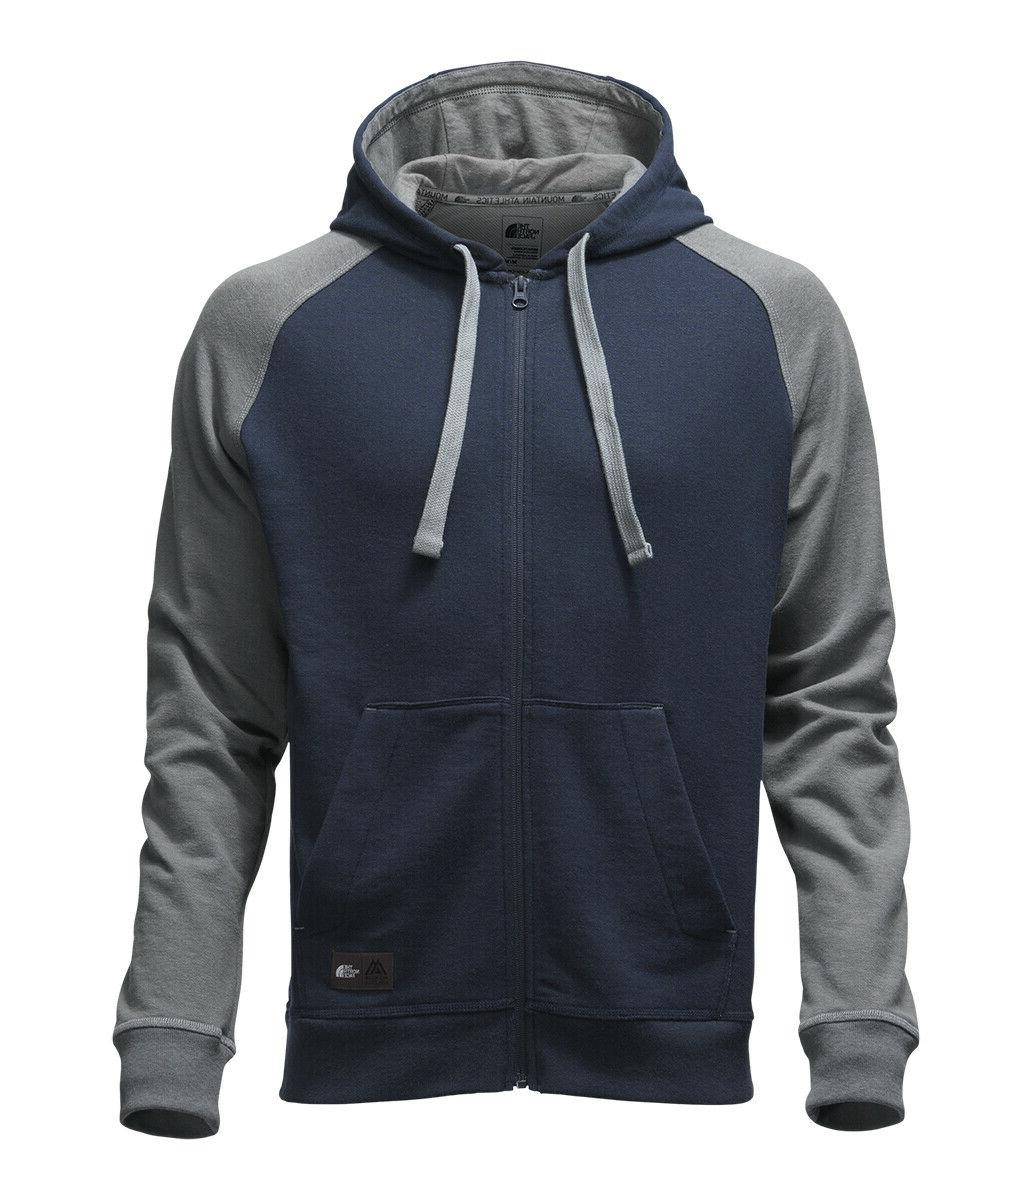 The Men's FlashDry Terry New NWT